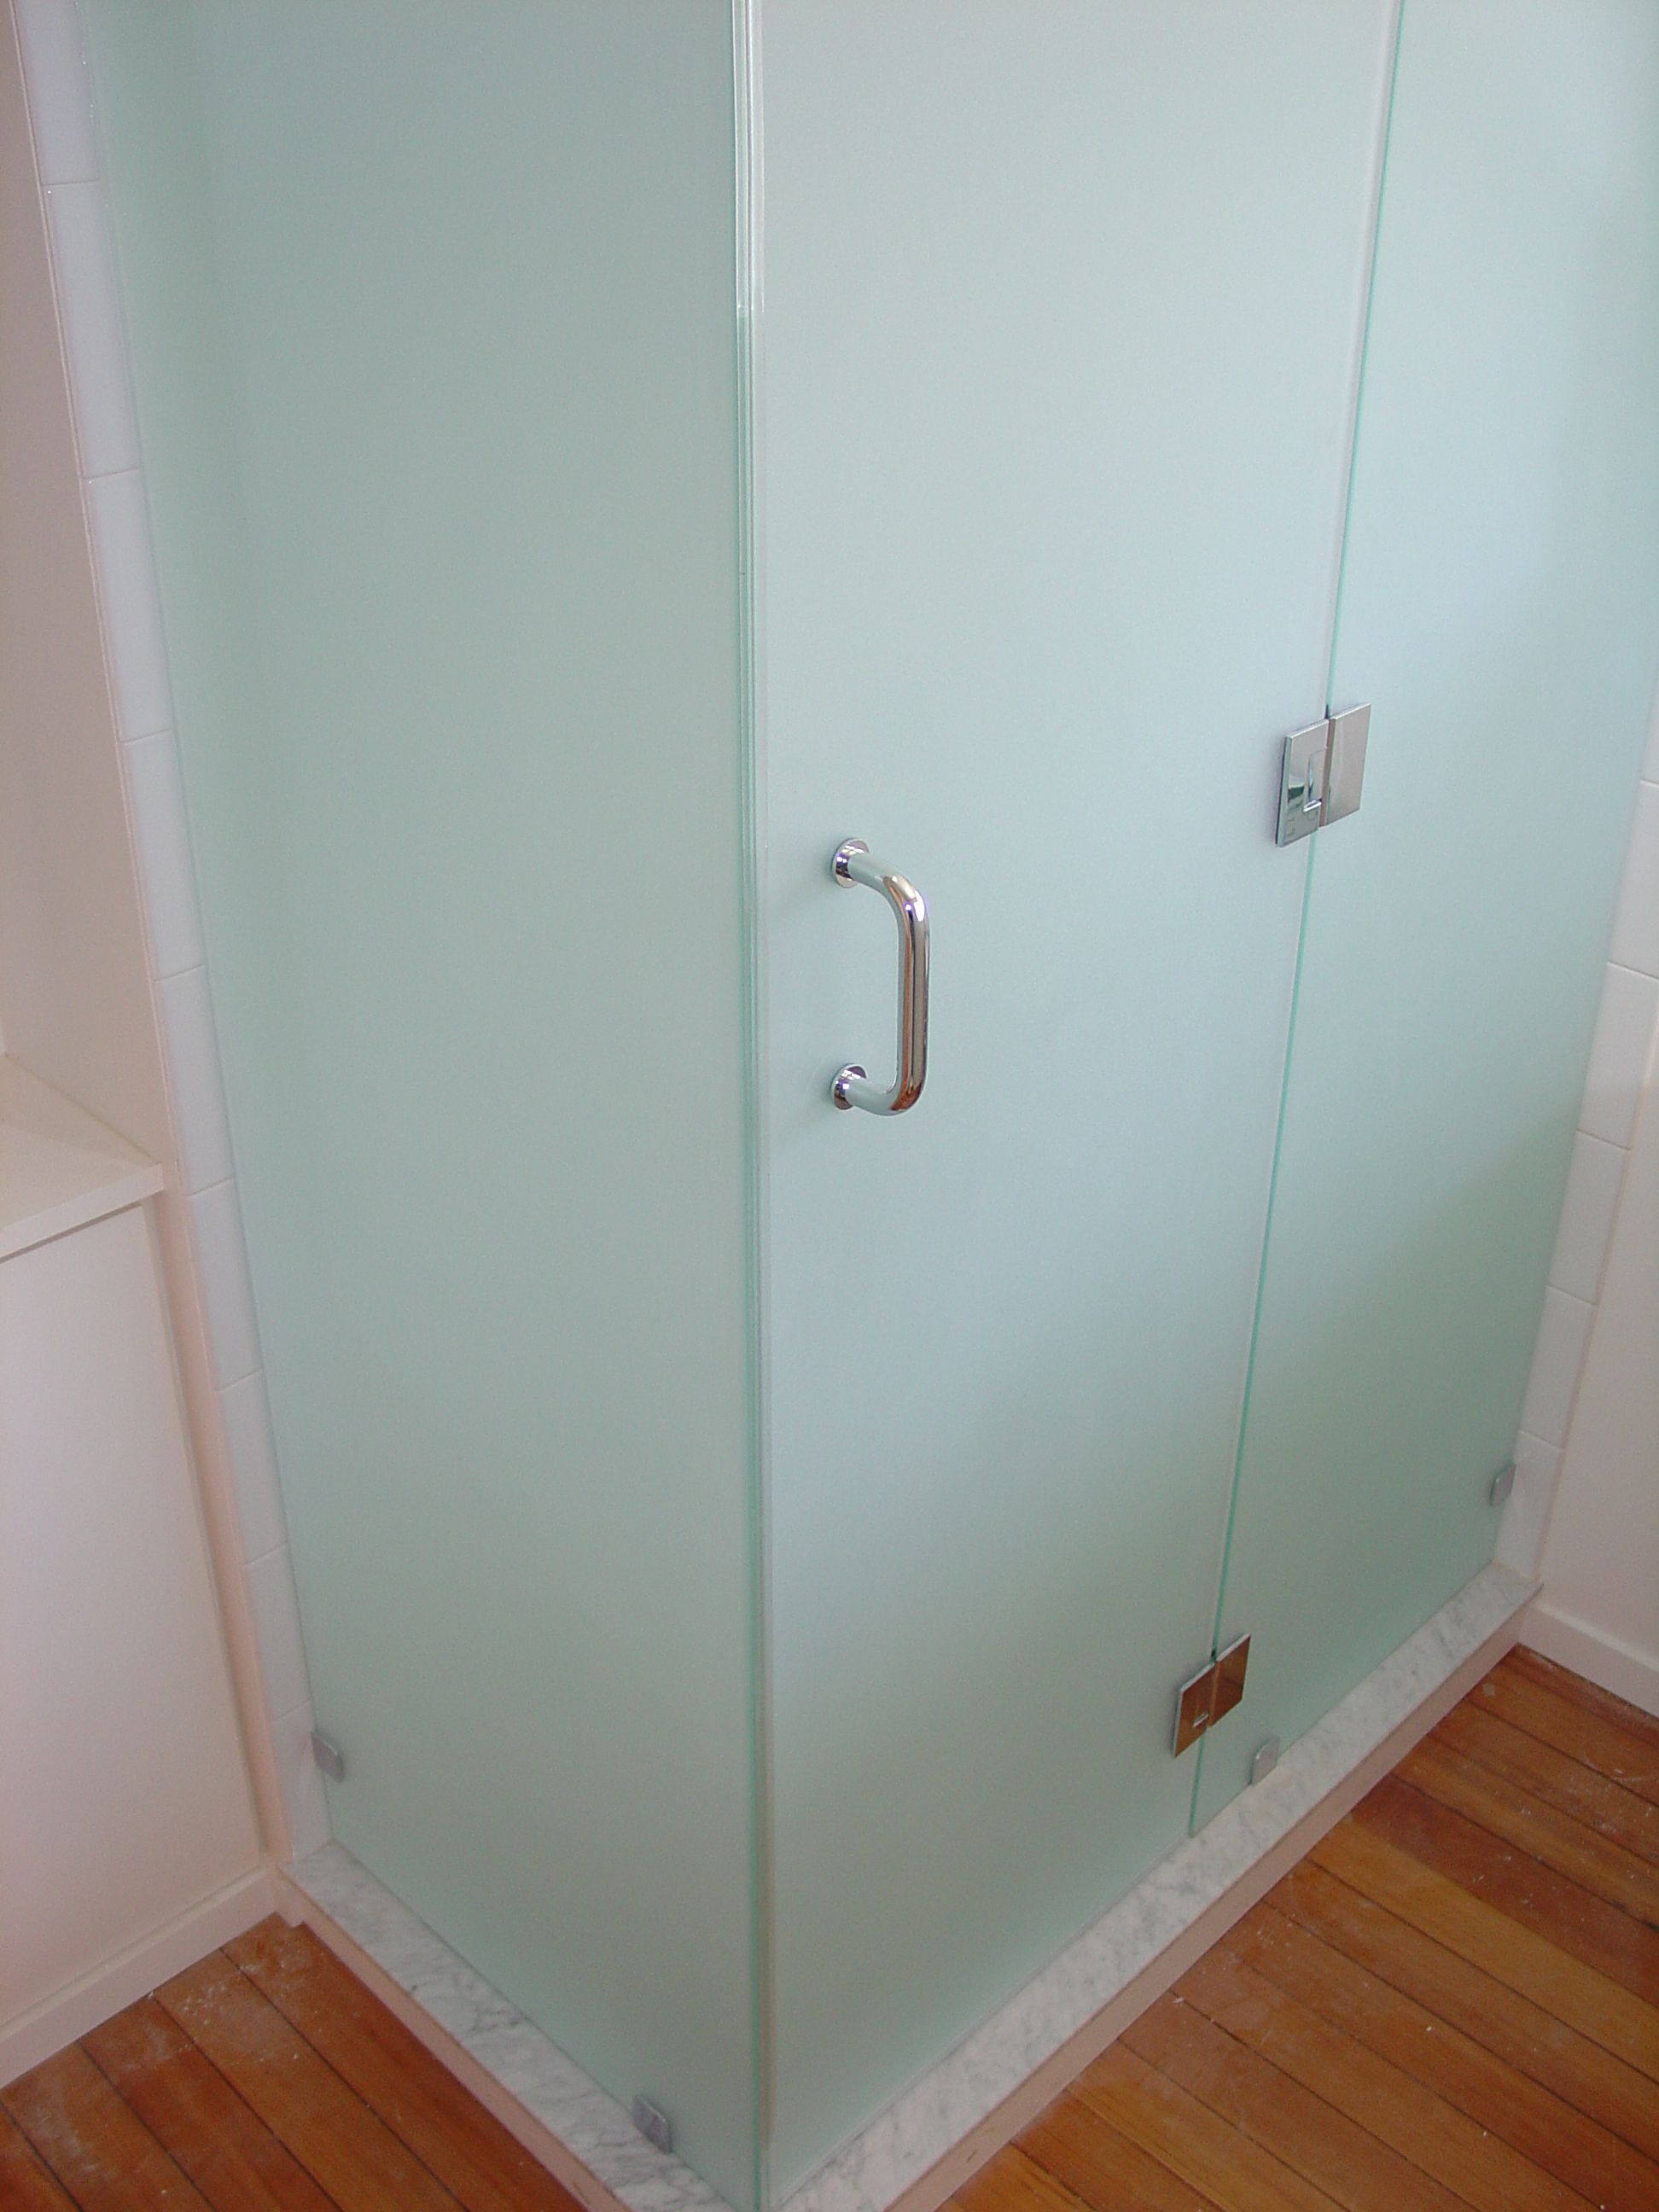 Frosted shower door will let in light, but still provide privacy